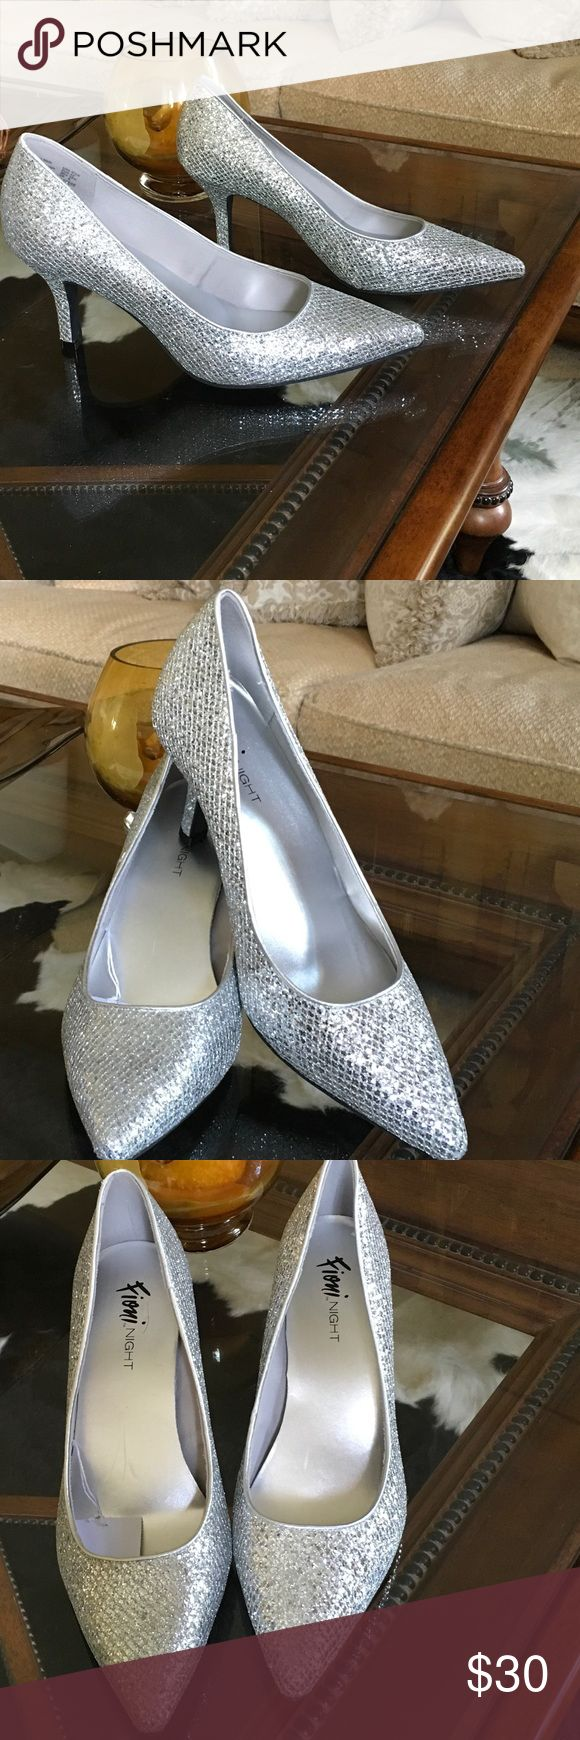 Silver Evening Shoes New, never worn, high heel Evening shoes. Fioni Night Shoes Heels